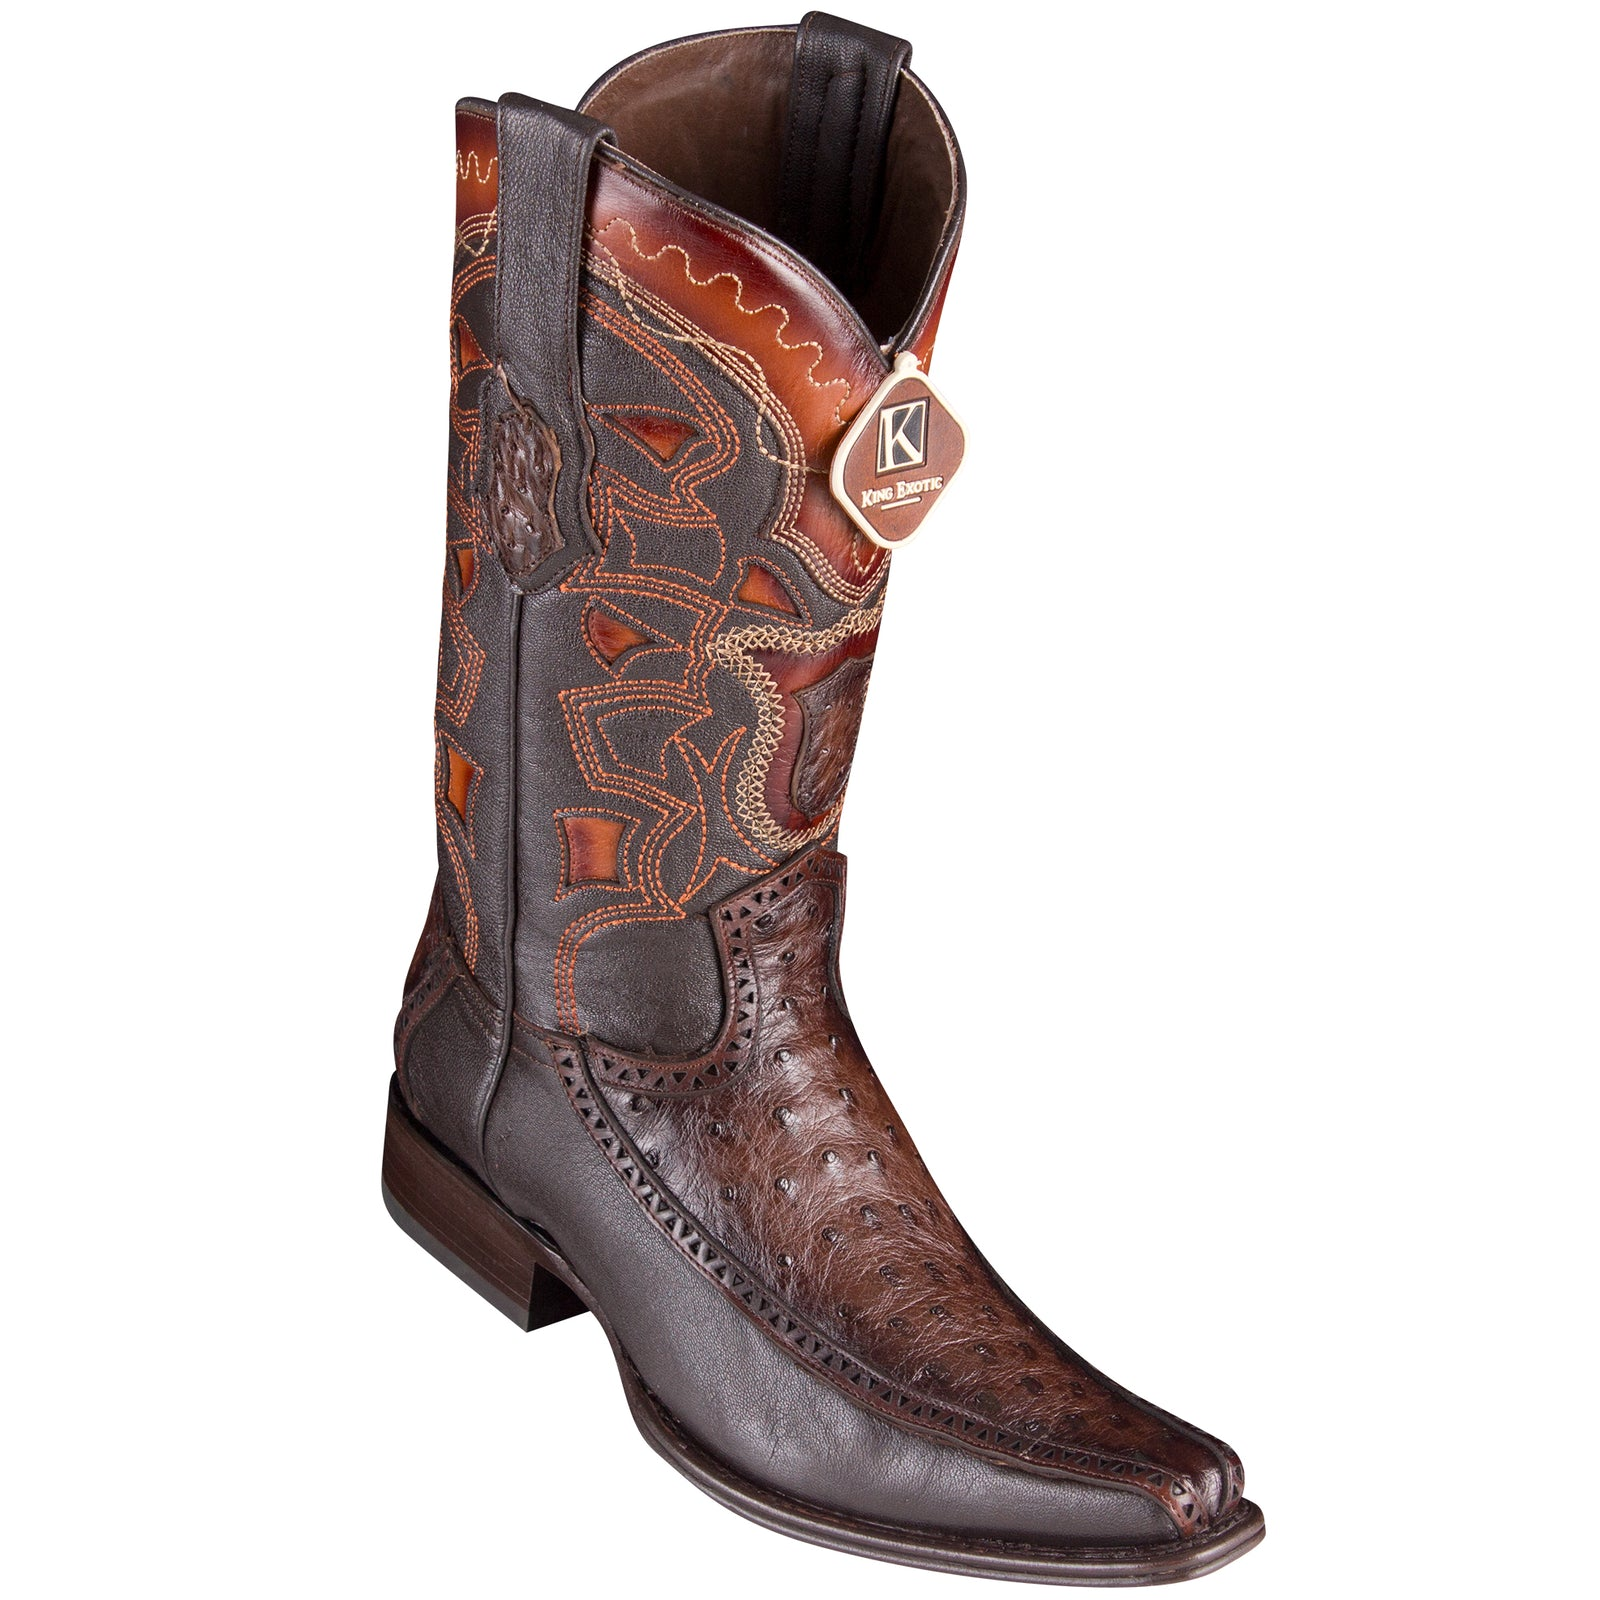 0513b0fd8f2 King Exotic Men's Ostrich Faded Brown Cowboy Boots - H76 European Toe